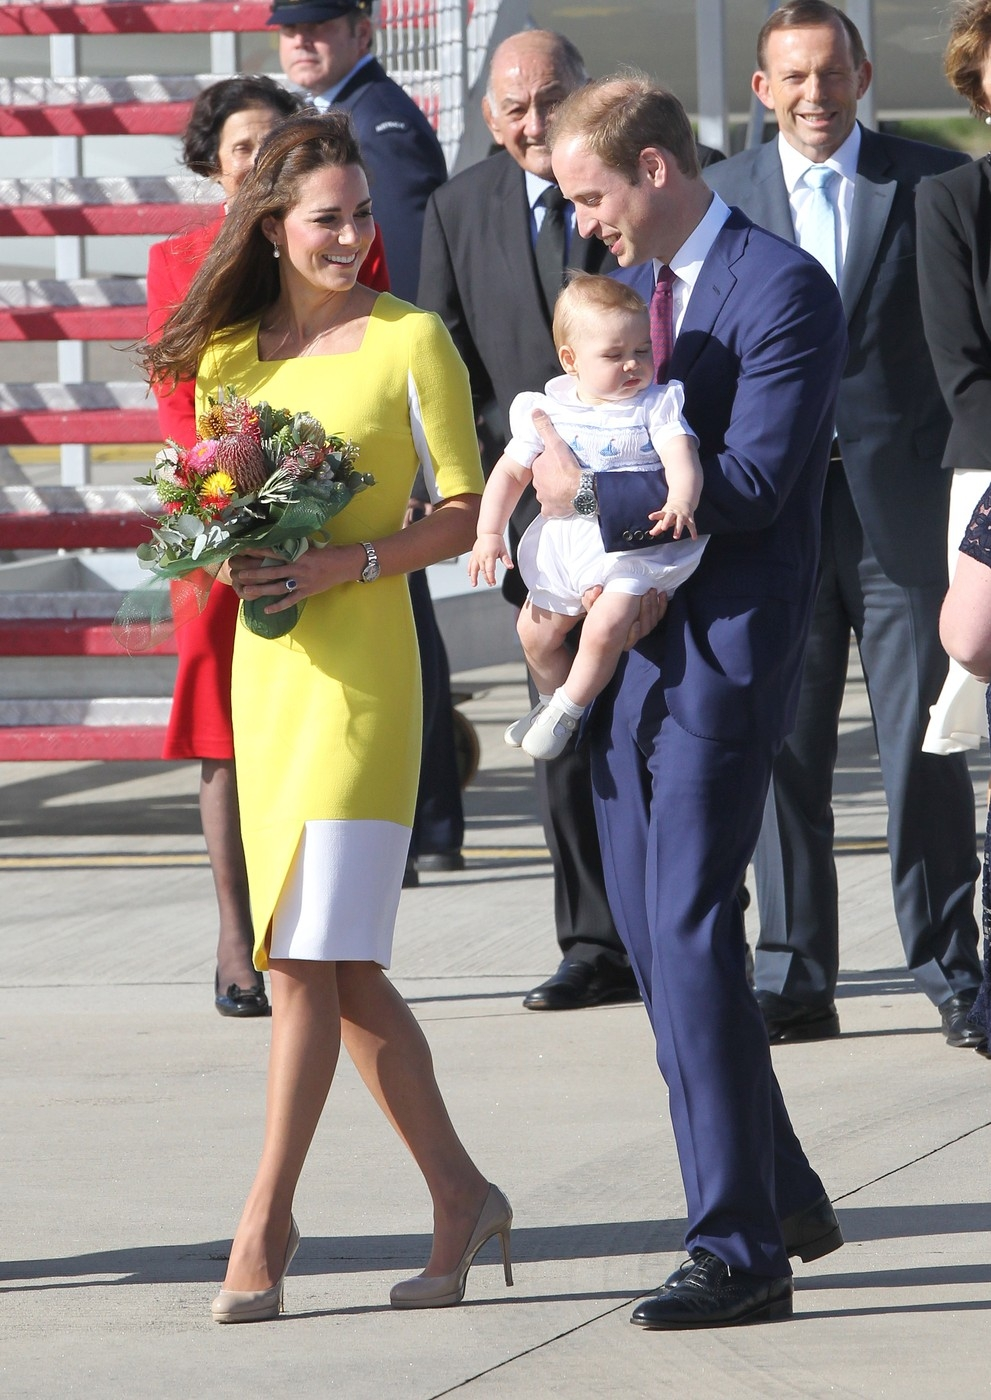 Prince William, Duke of Cambridge and Catherine, Duchess of Cambridge, Kate Middleton, Prince George of Cambridge Arrive At Sydney Airport